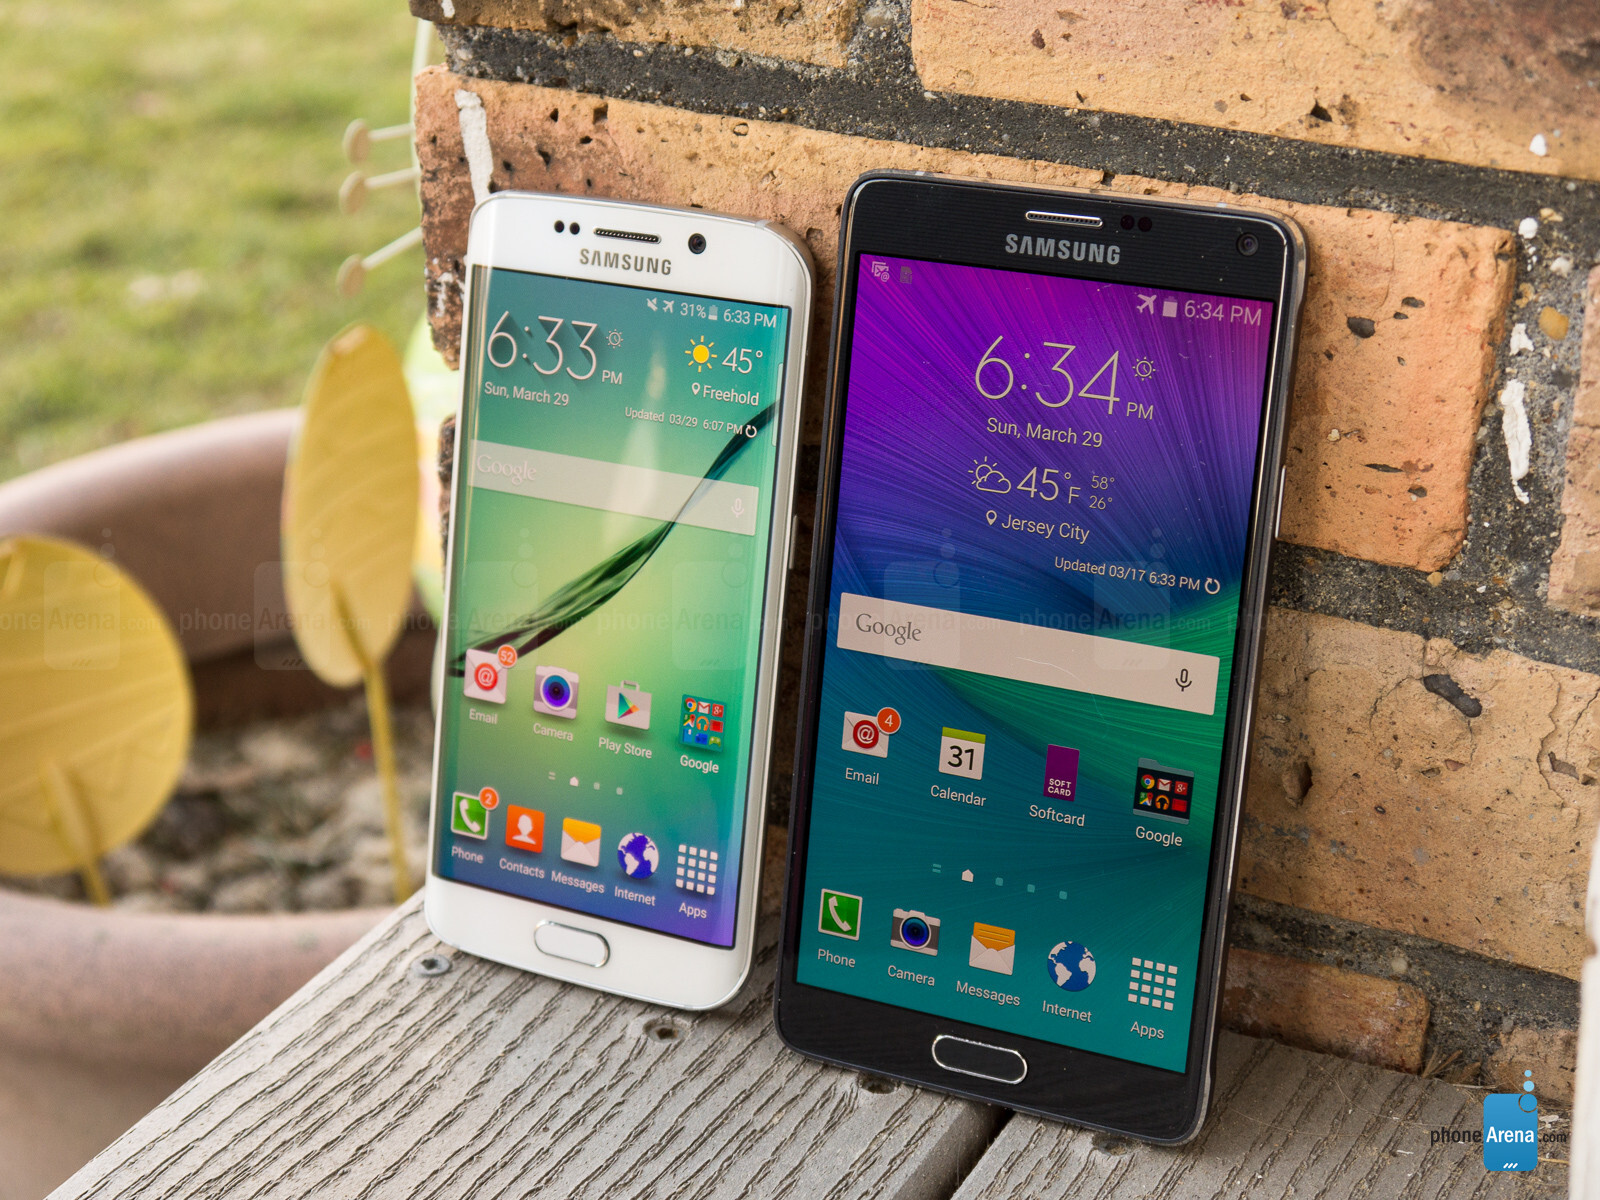 Samsung Galaxy S6 Edge Vs Note 4 3 White Gold